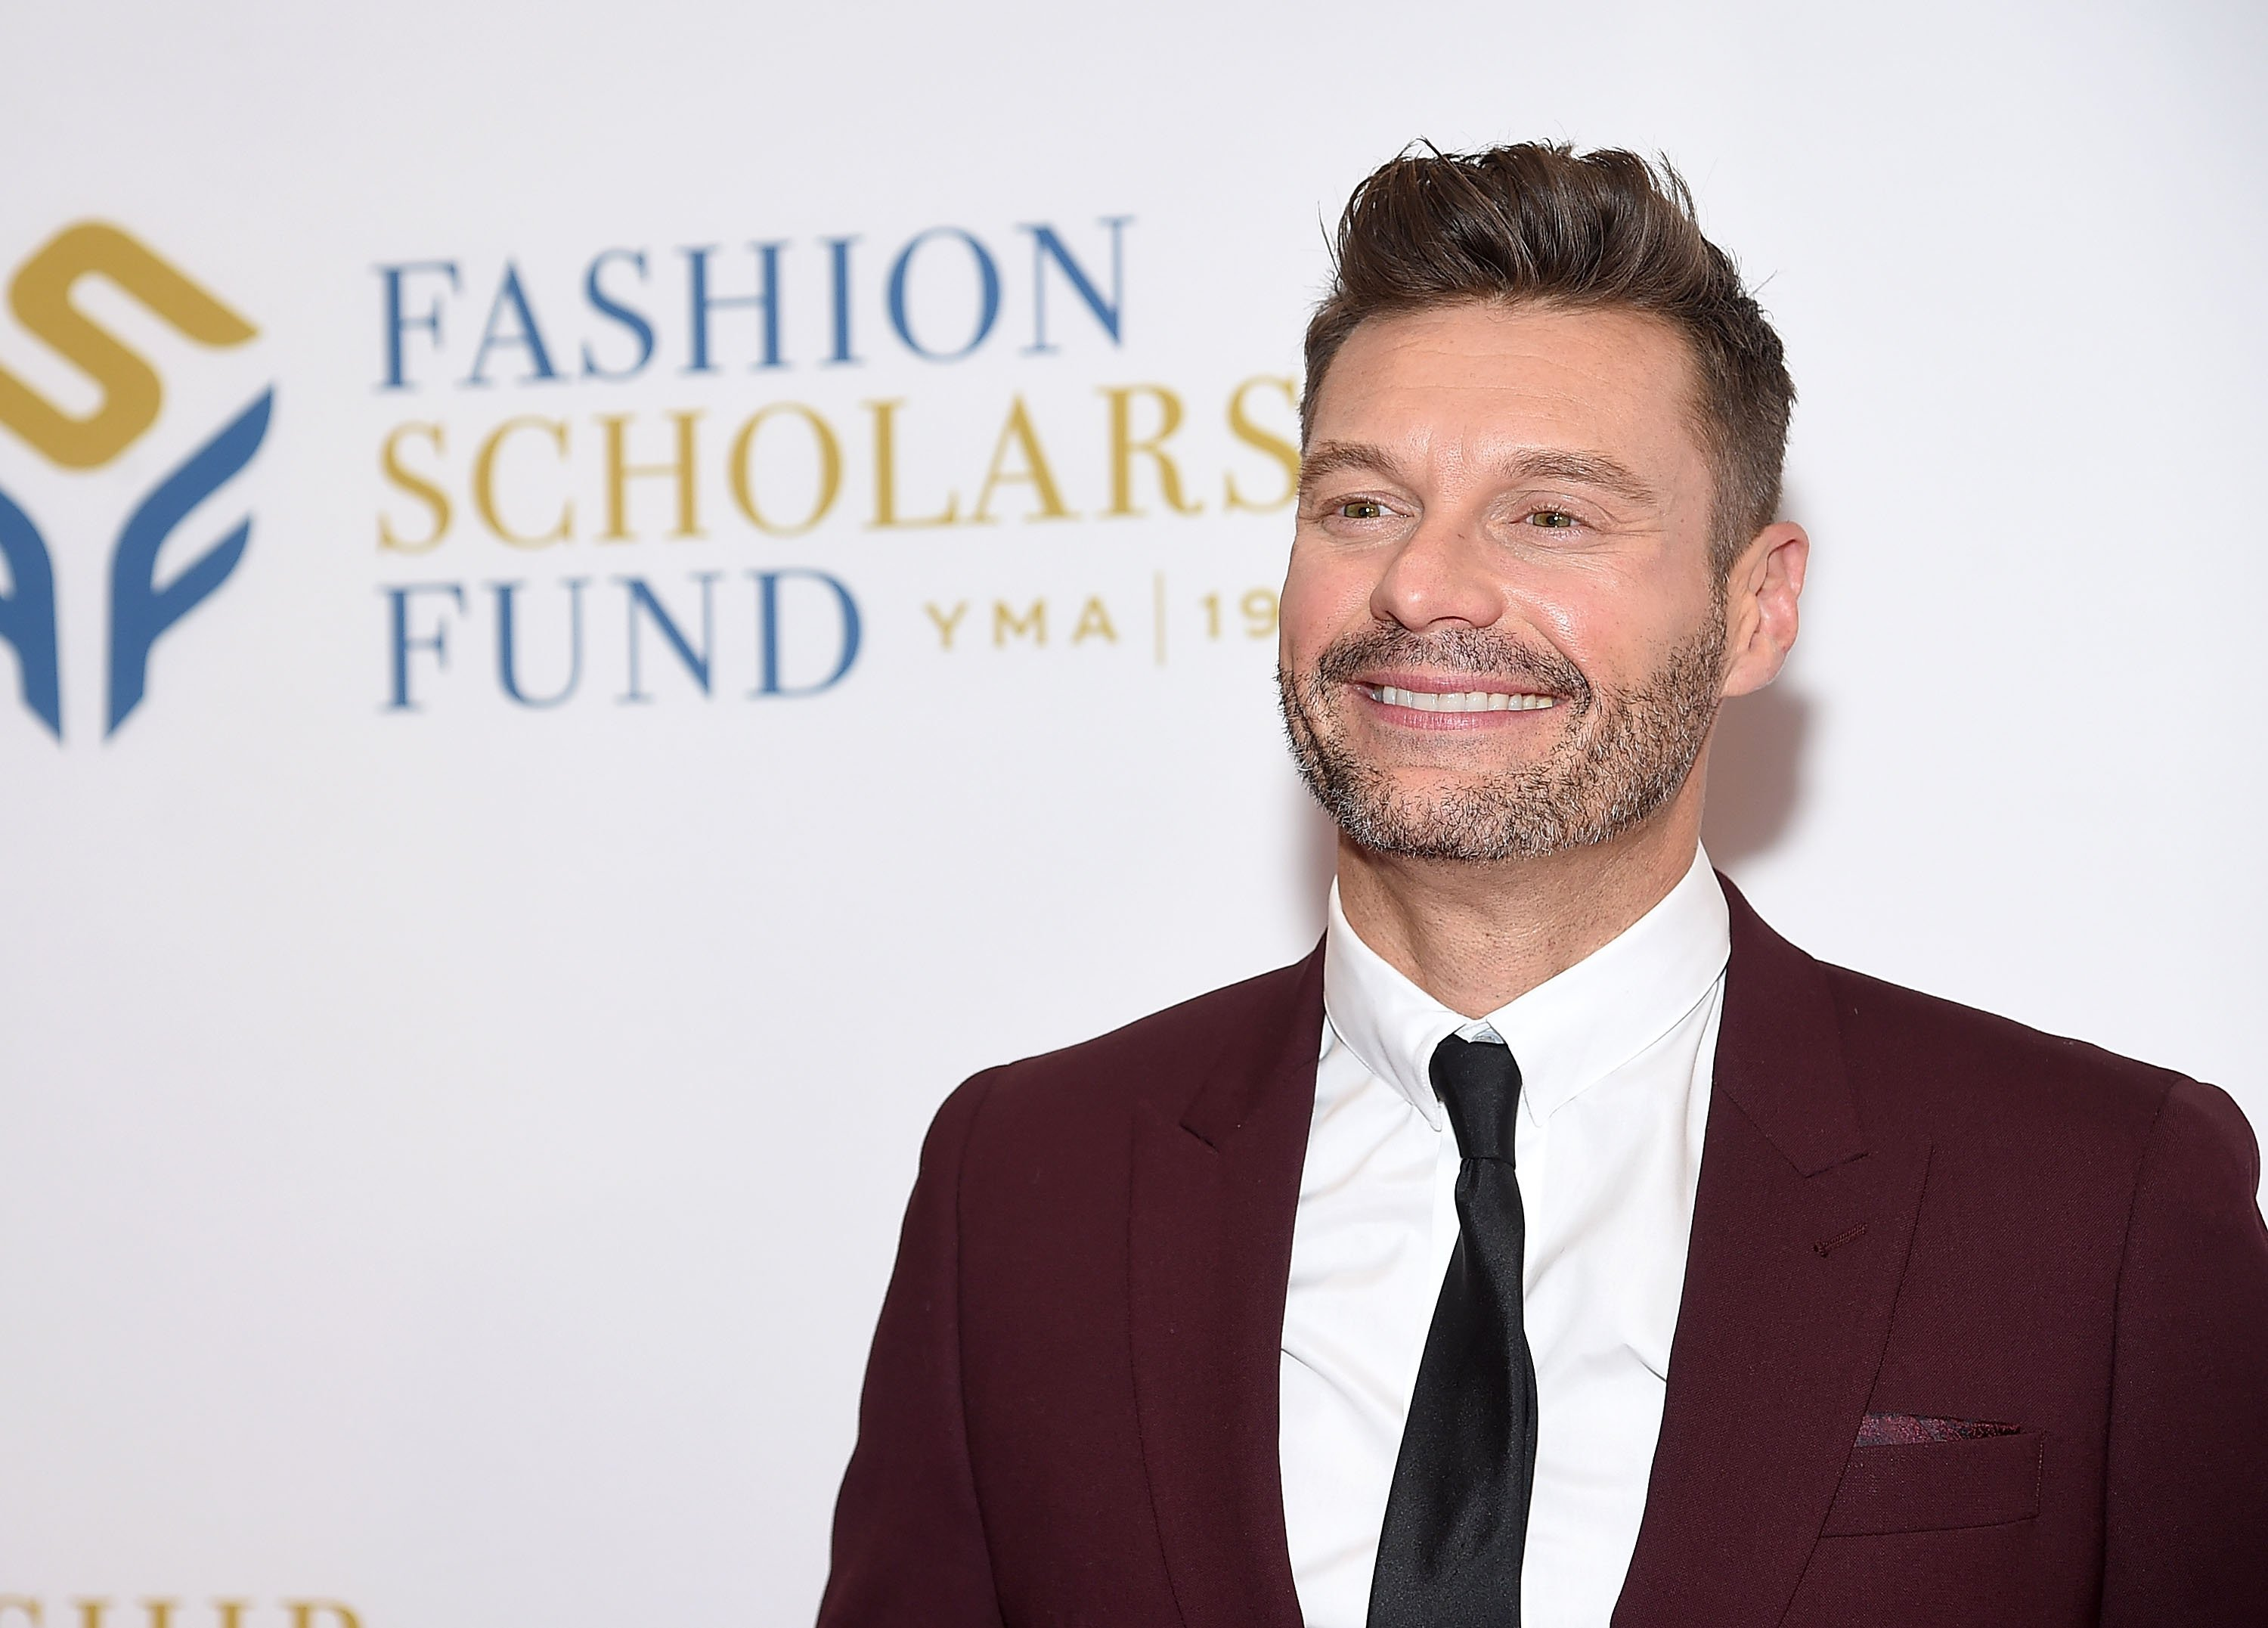 Ryan Seacrest at the 2019 Fashion Scholarship Fund Awards Gala on January 10 in New York City | Photo: Getty Images